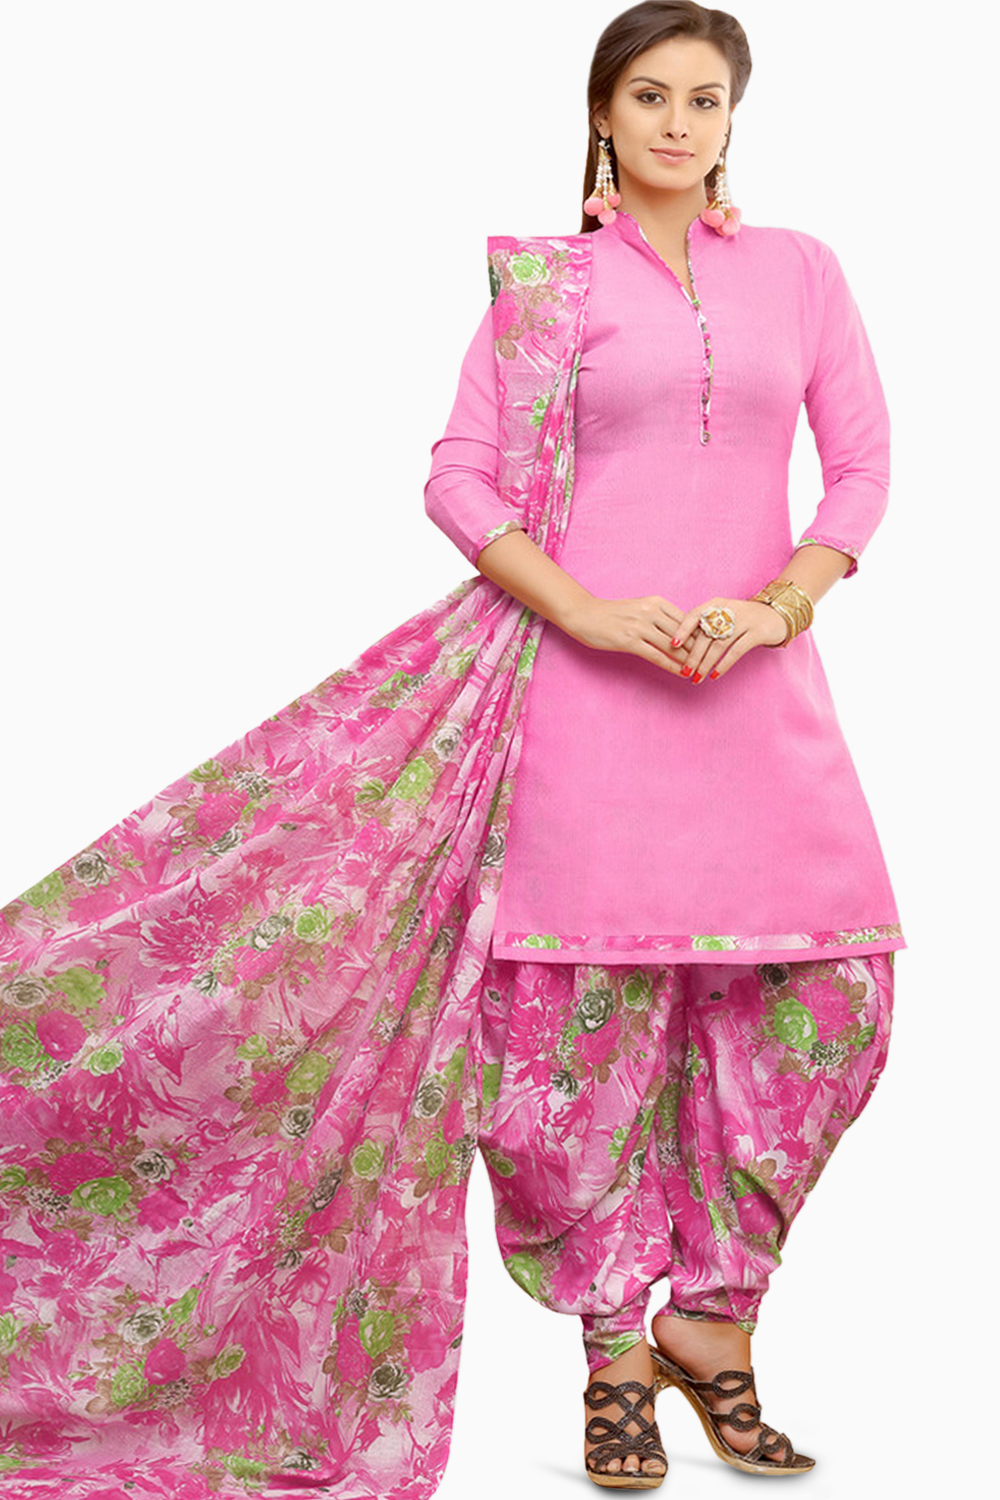 461ca2b241 MINU and MANINI Suits Pink Cotton Salwar Suits Sets Dress Material ...